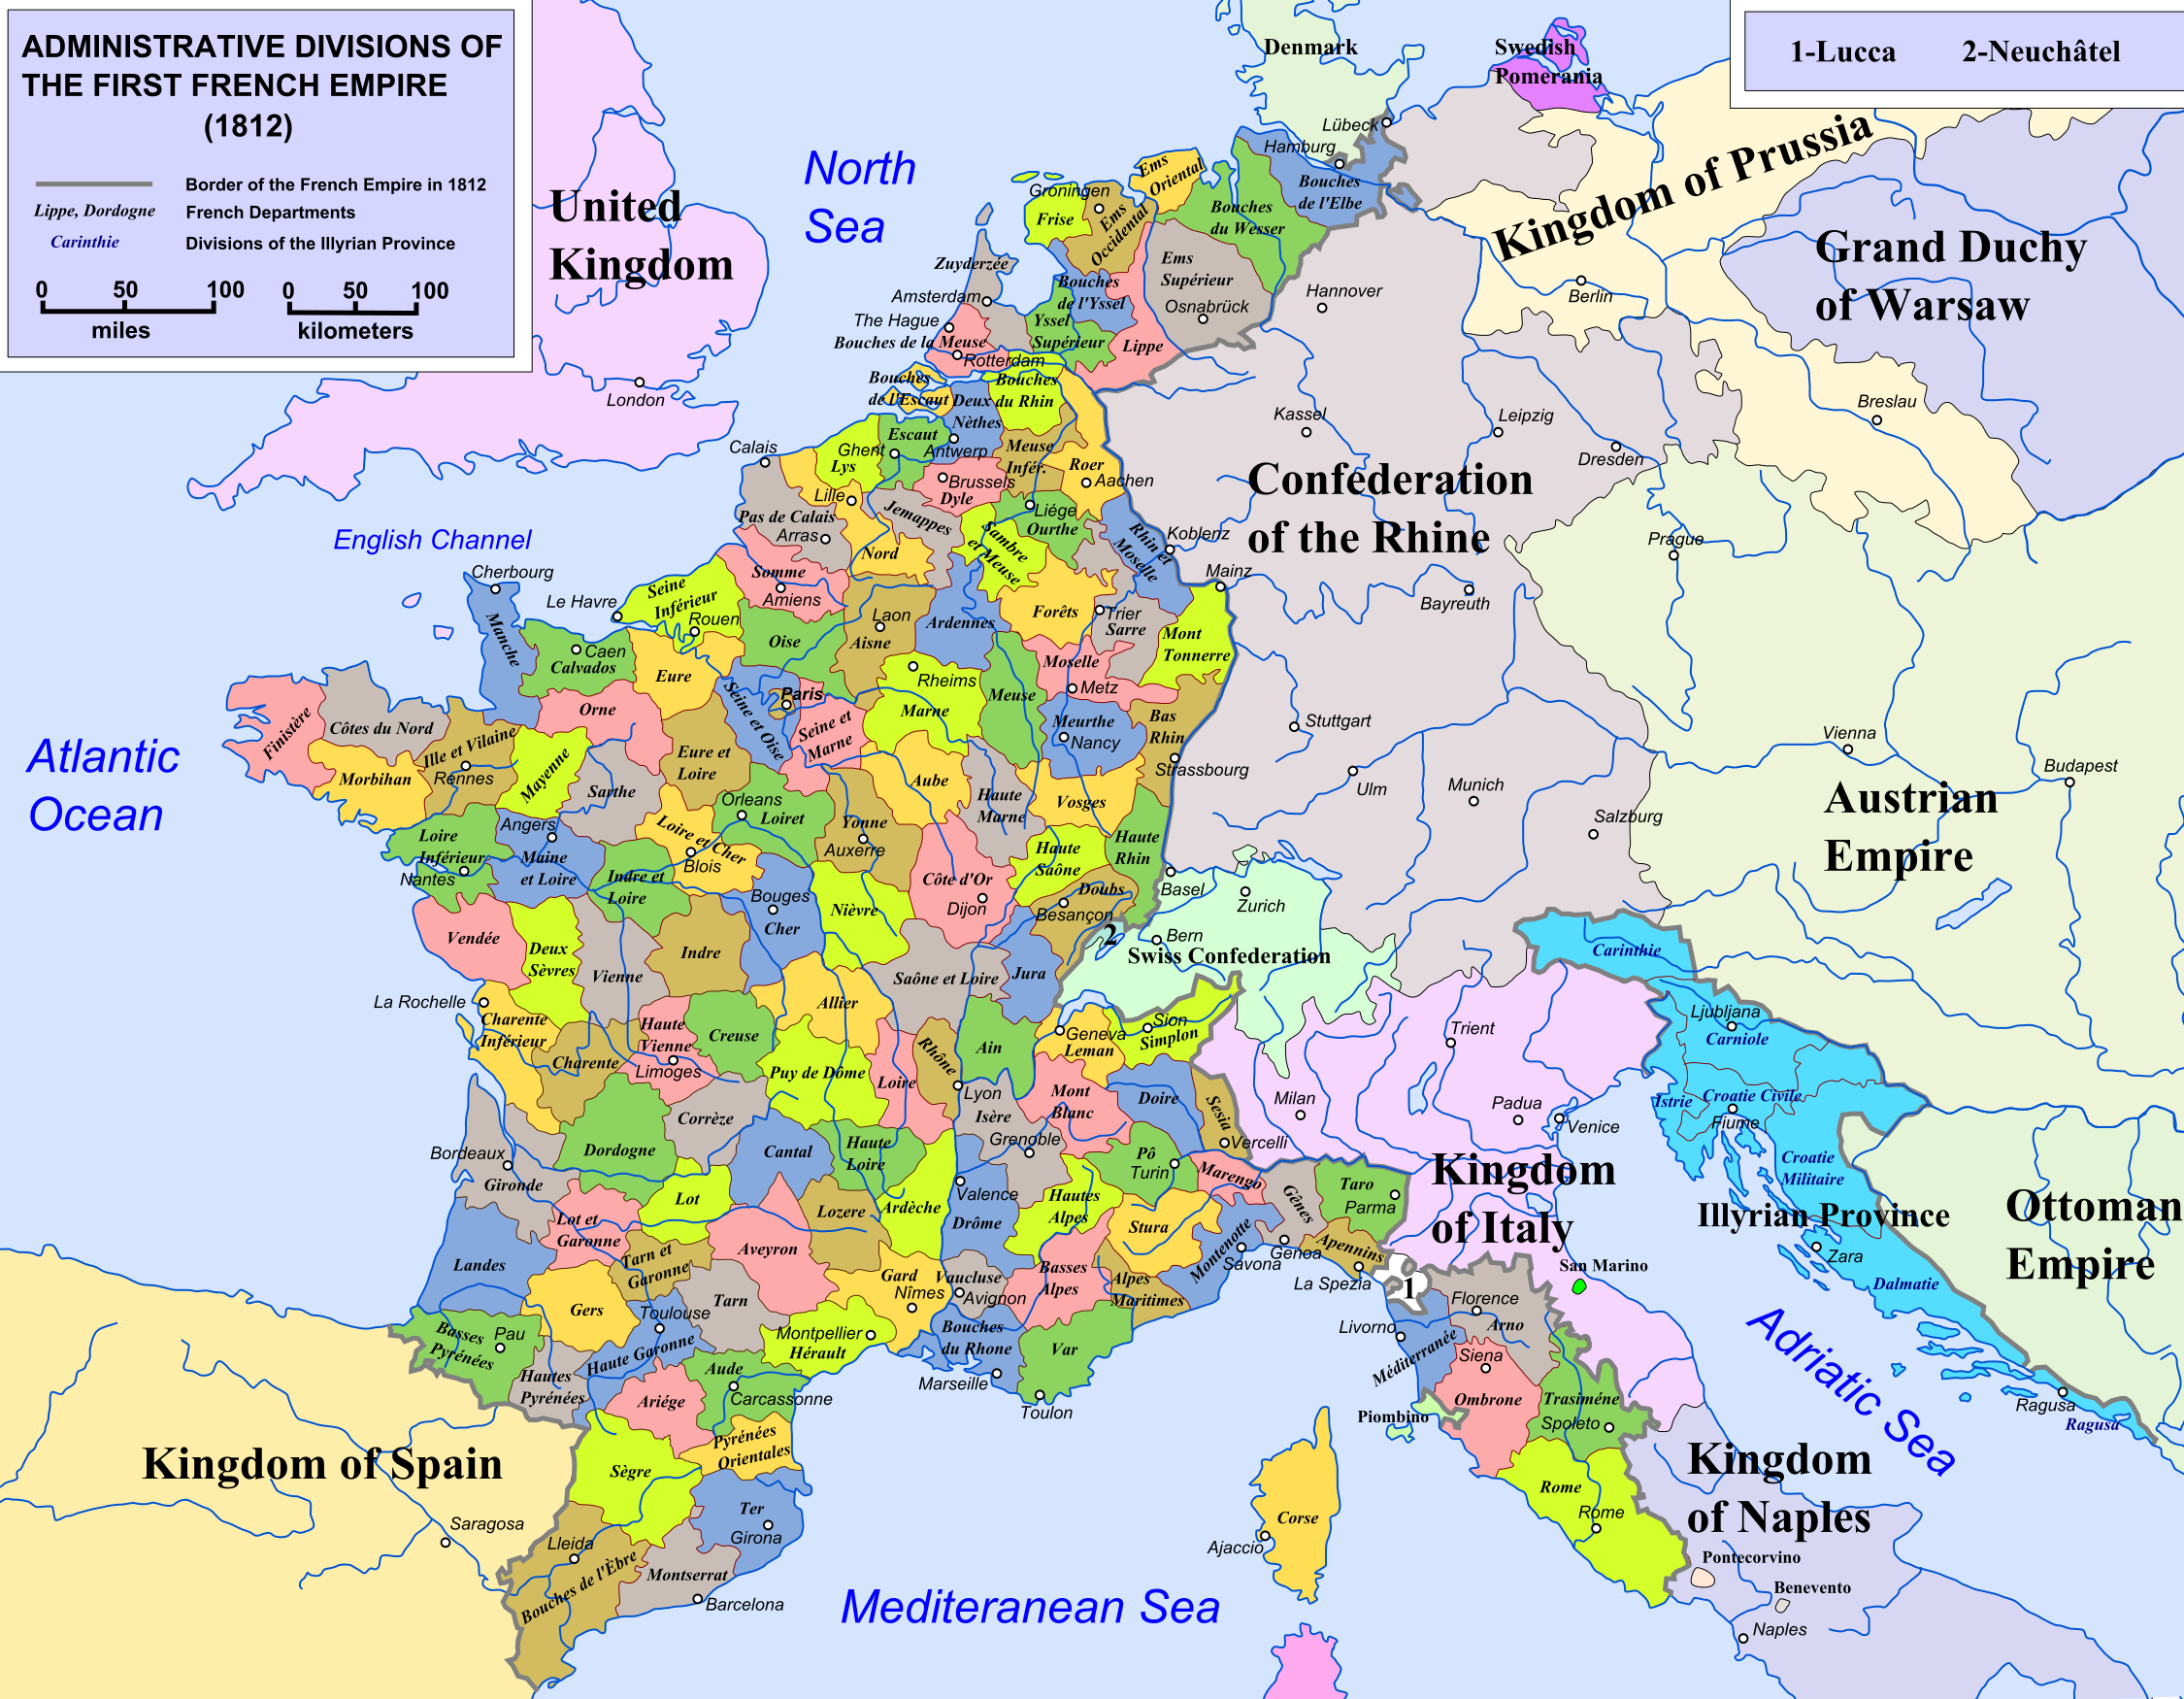 A fascinating map of the numerous divisions of the french empire in a fascinating map of the numerous divisions of the french empire in 1812 gumiabroncs Gallery